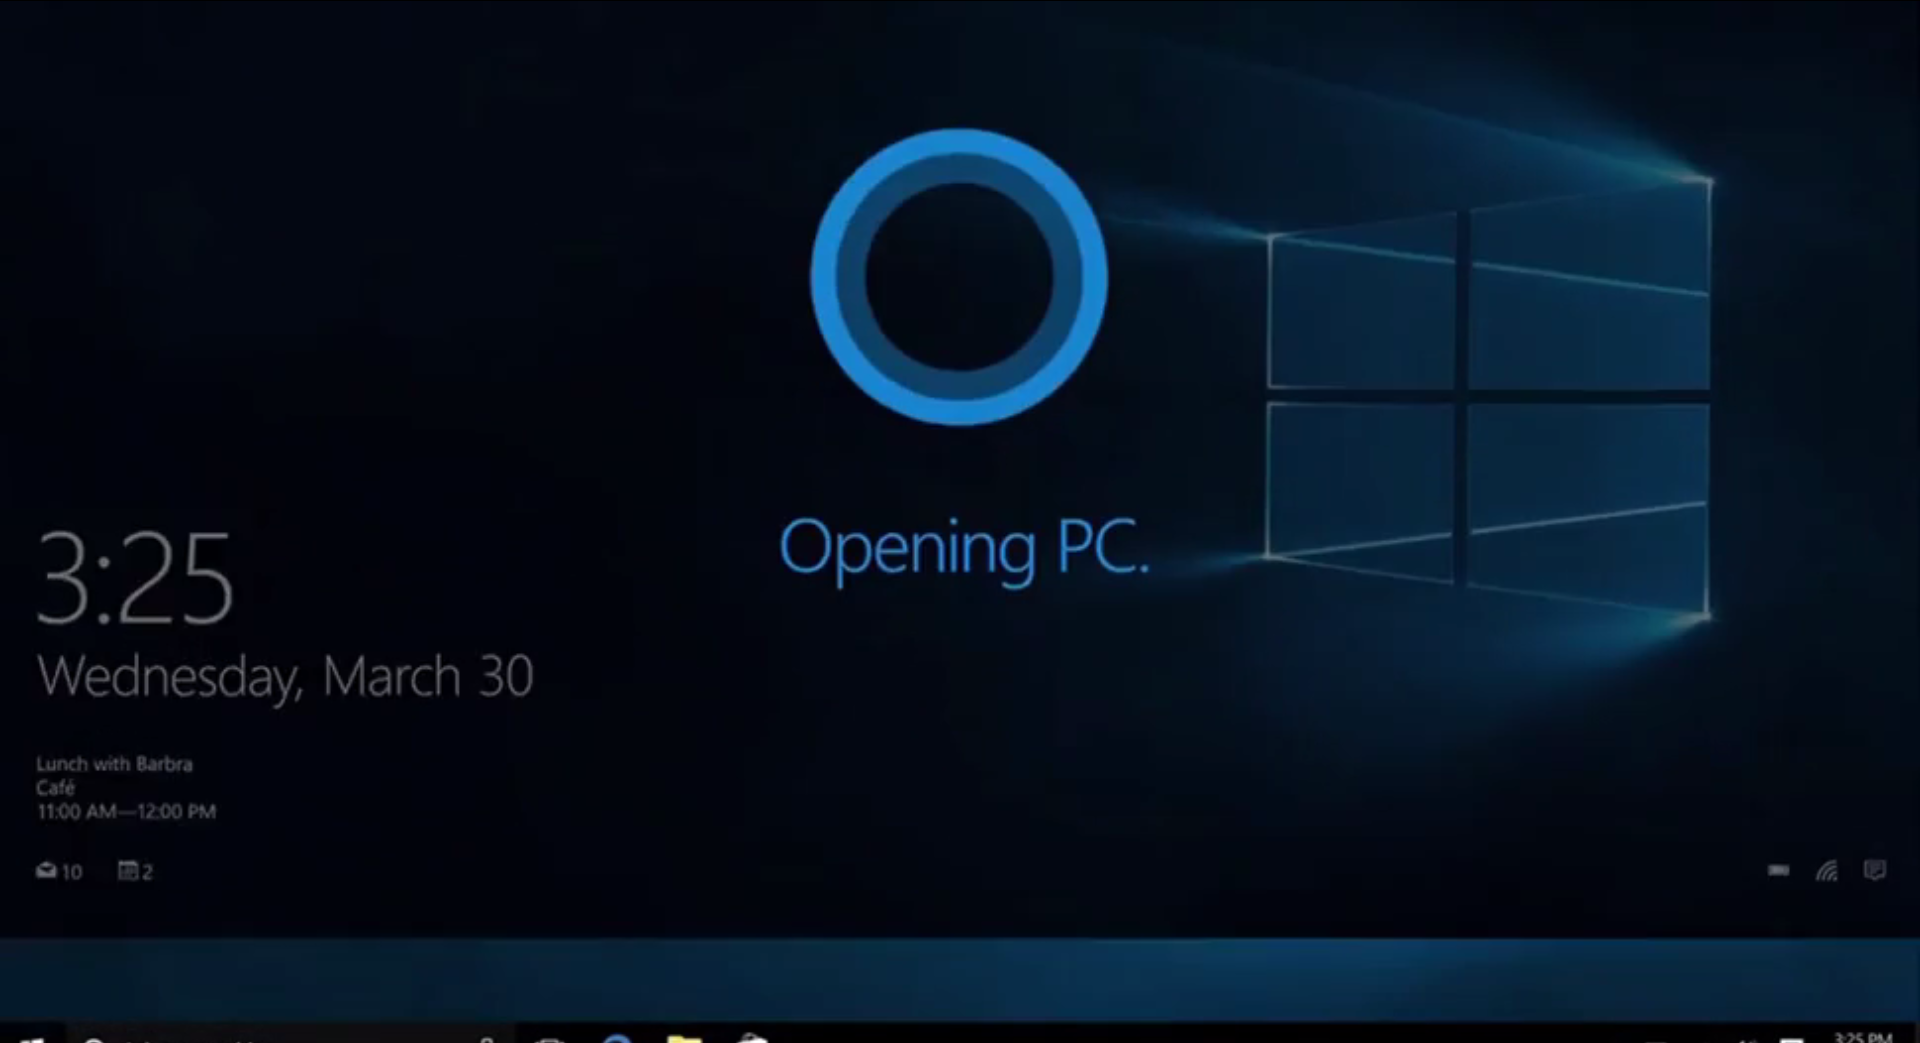 win10anniversary cortana lockscreen